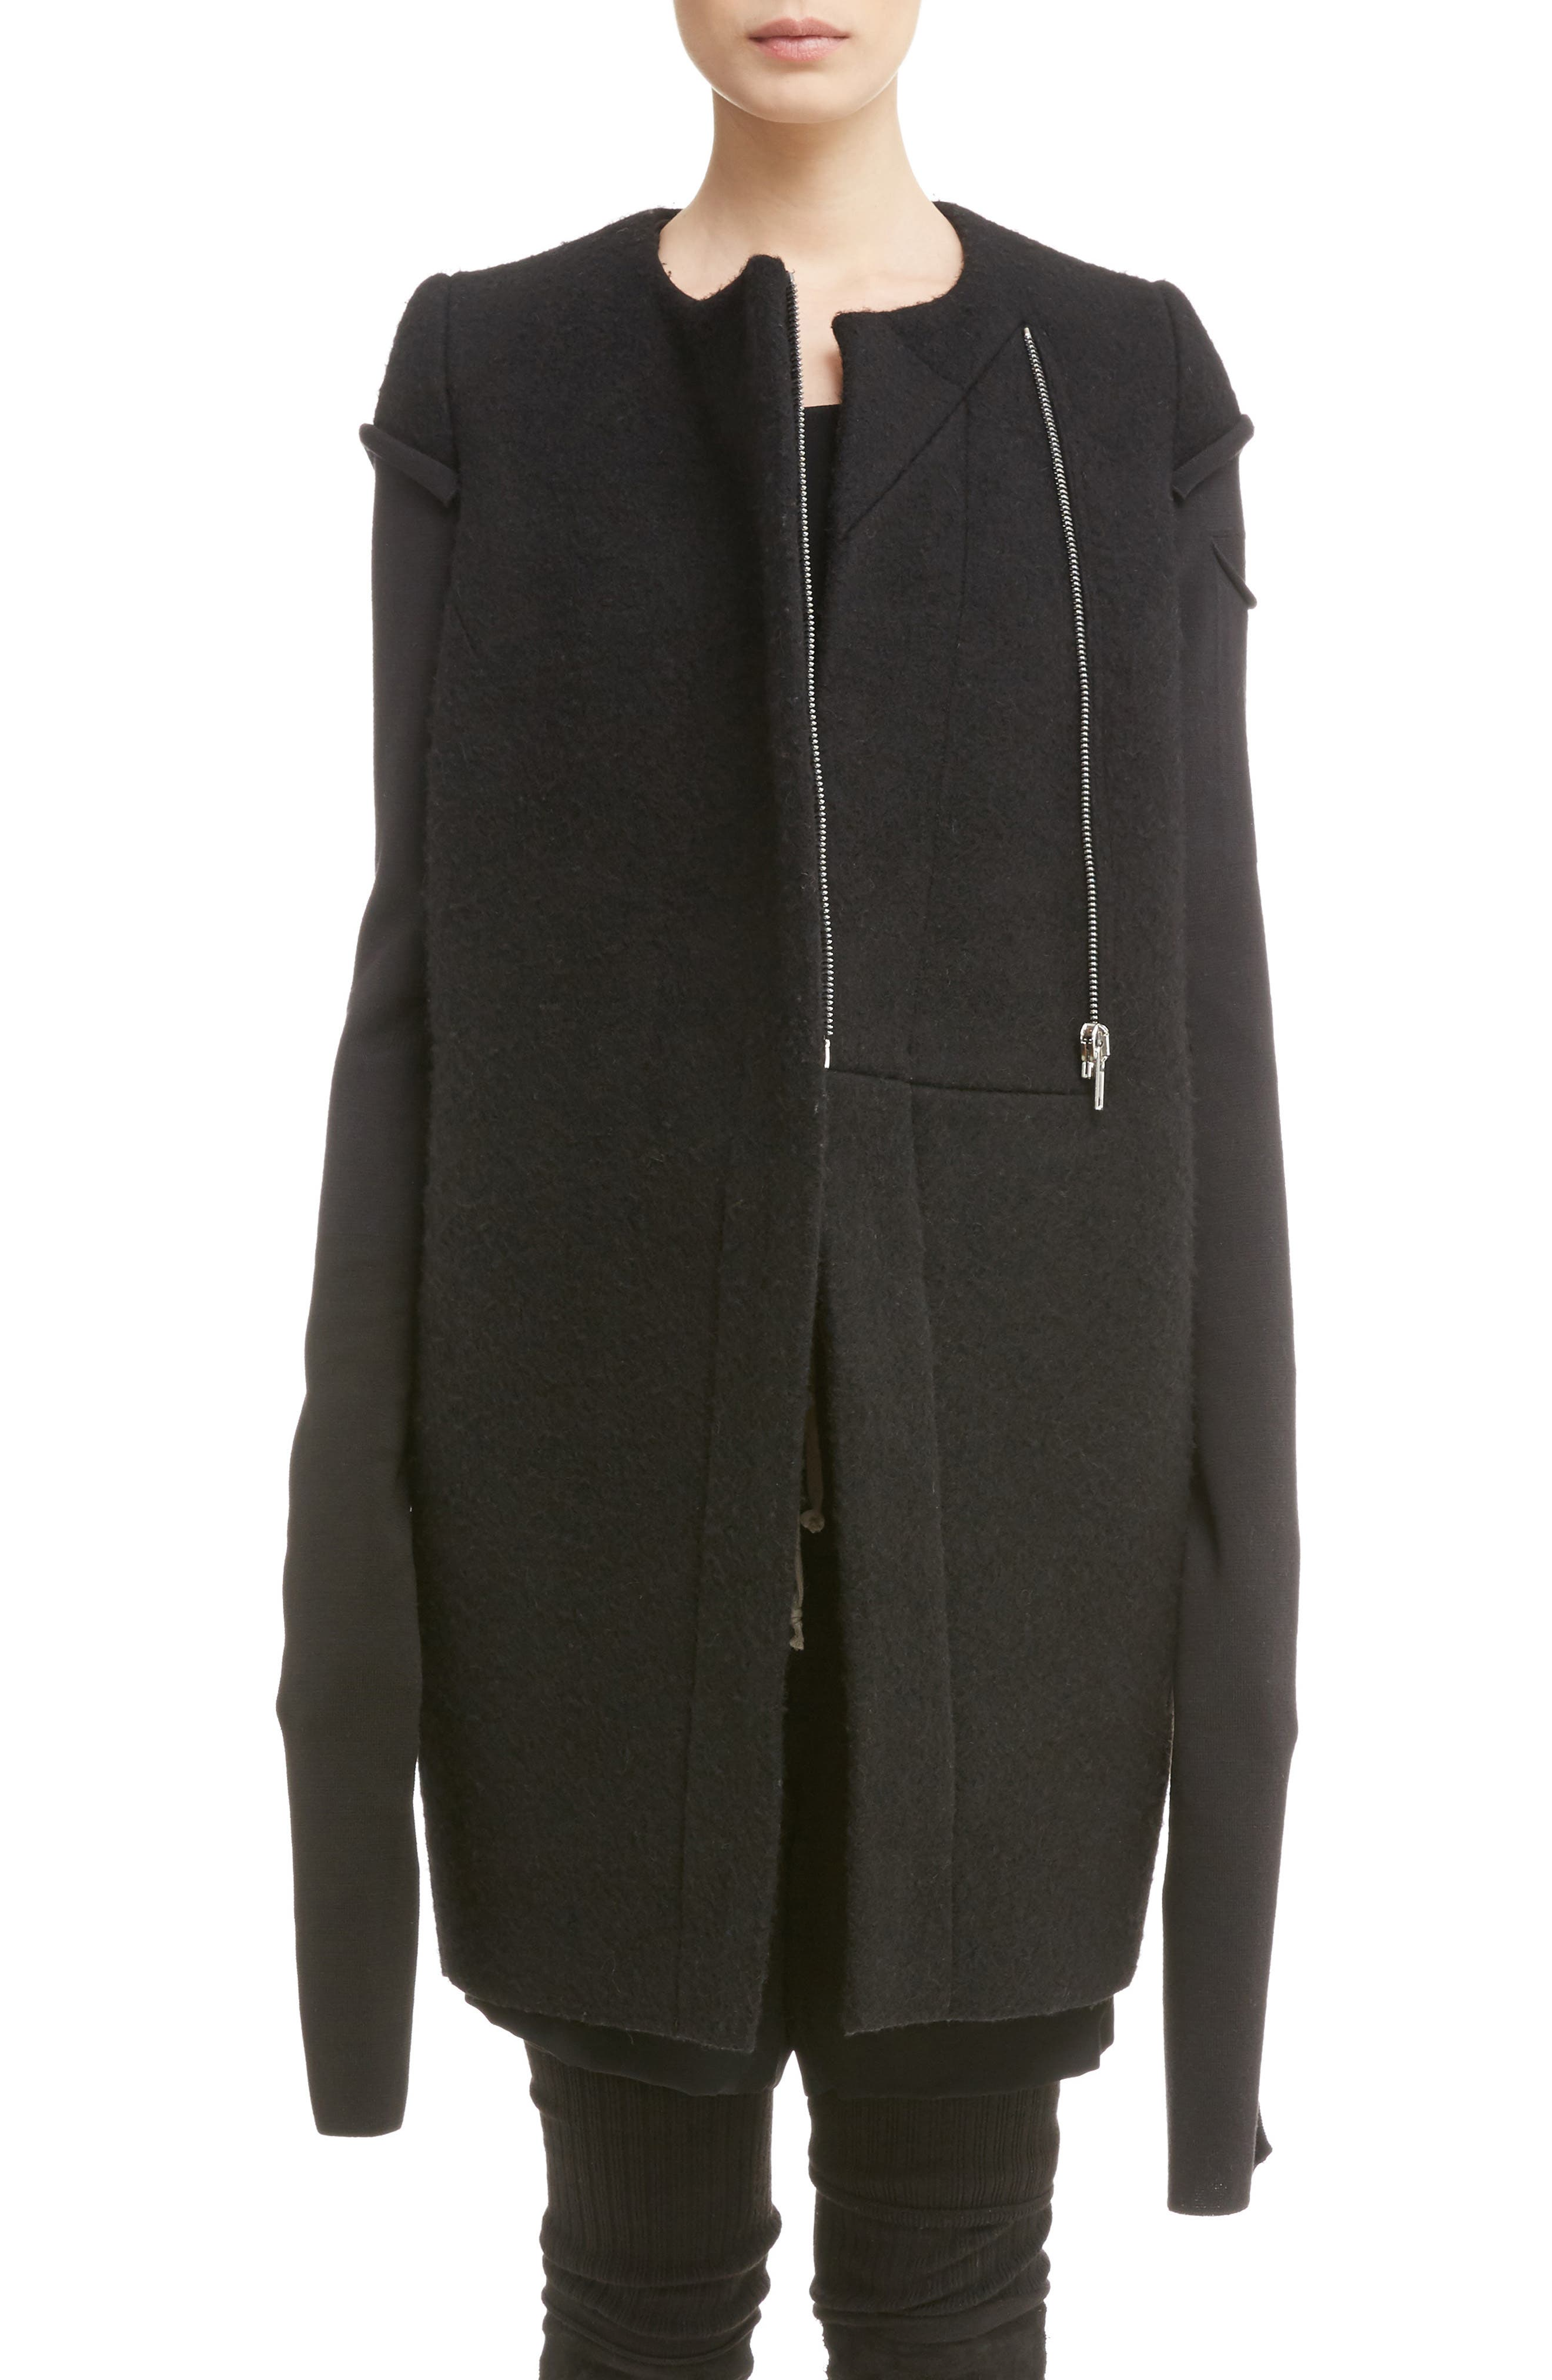 Main Image - Rick Owens Double Face Boiled Wool Jacket